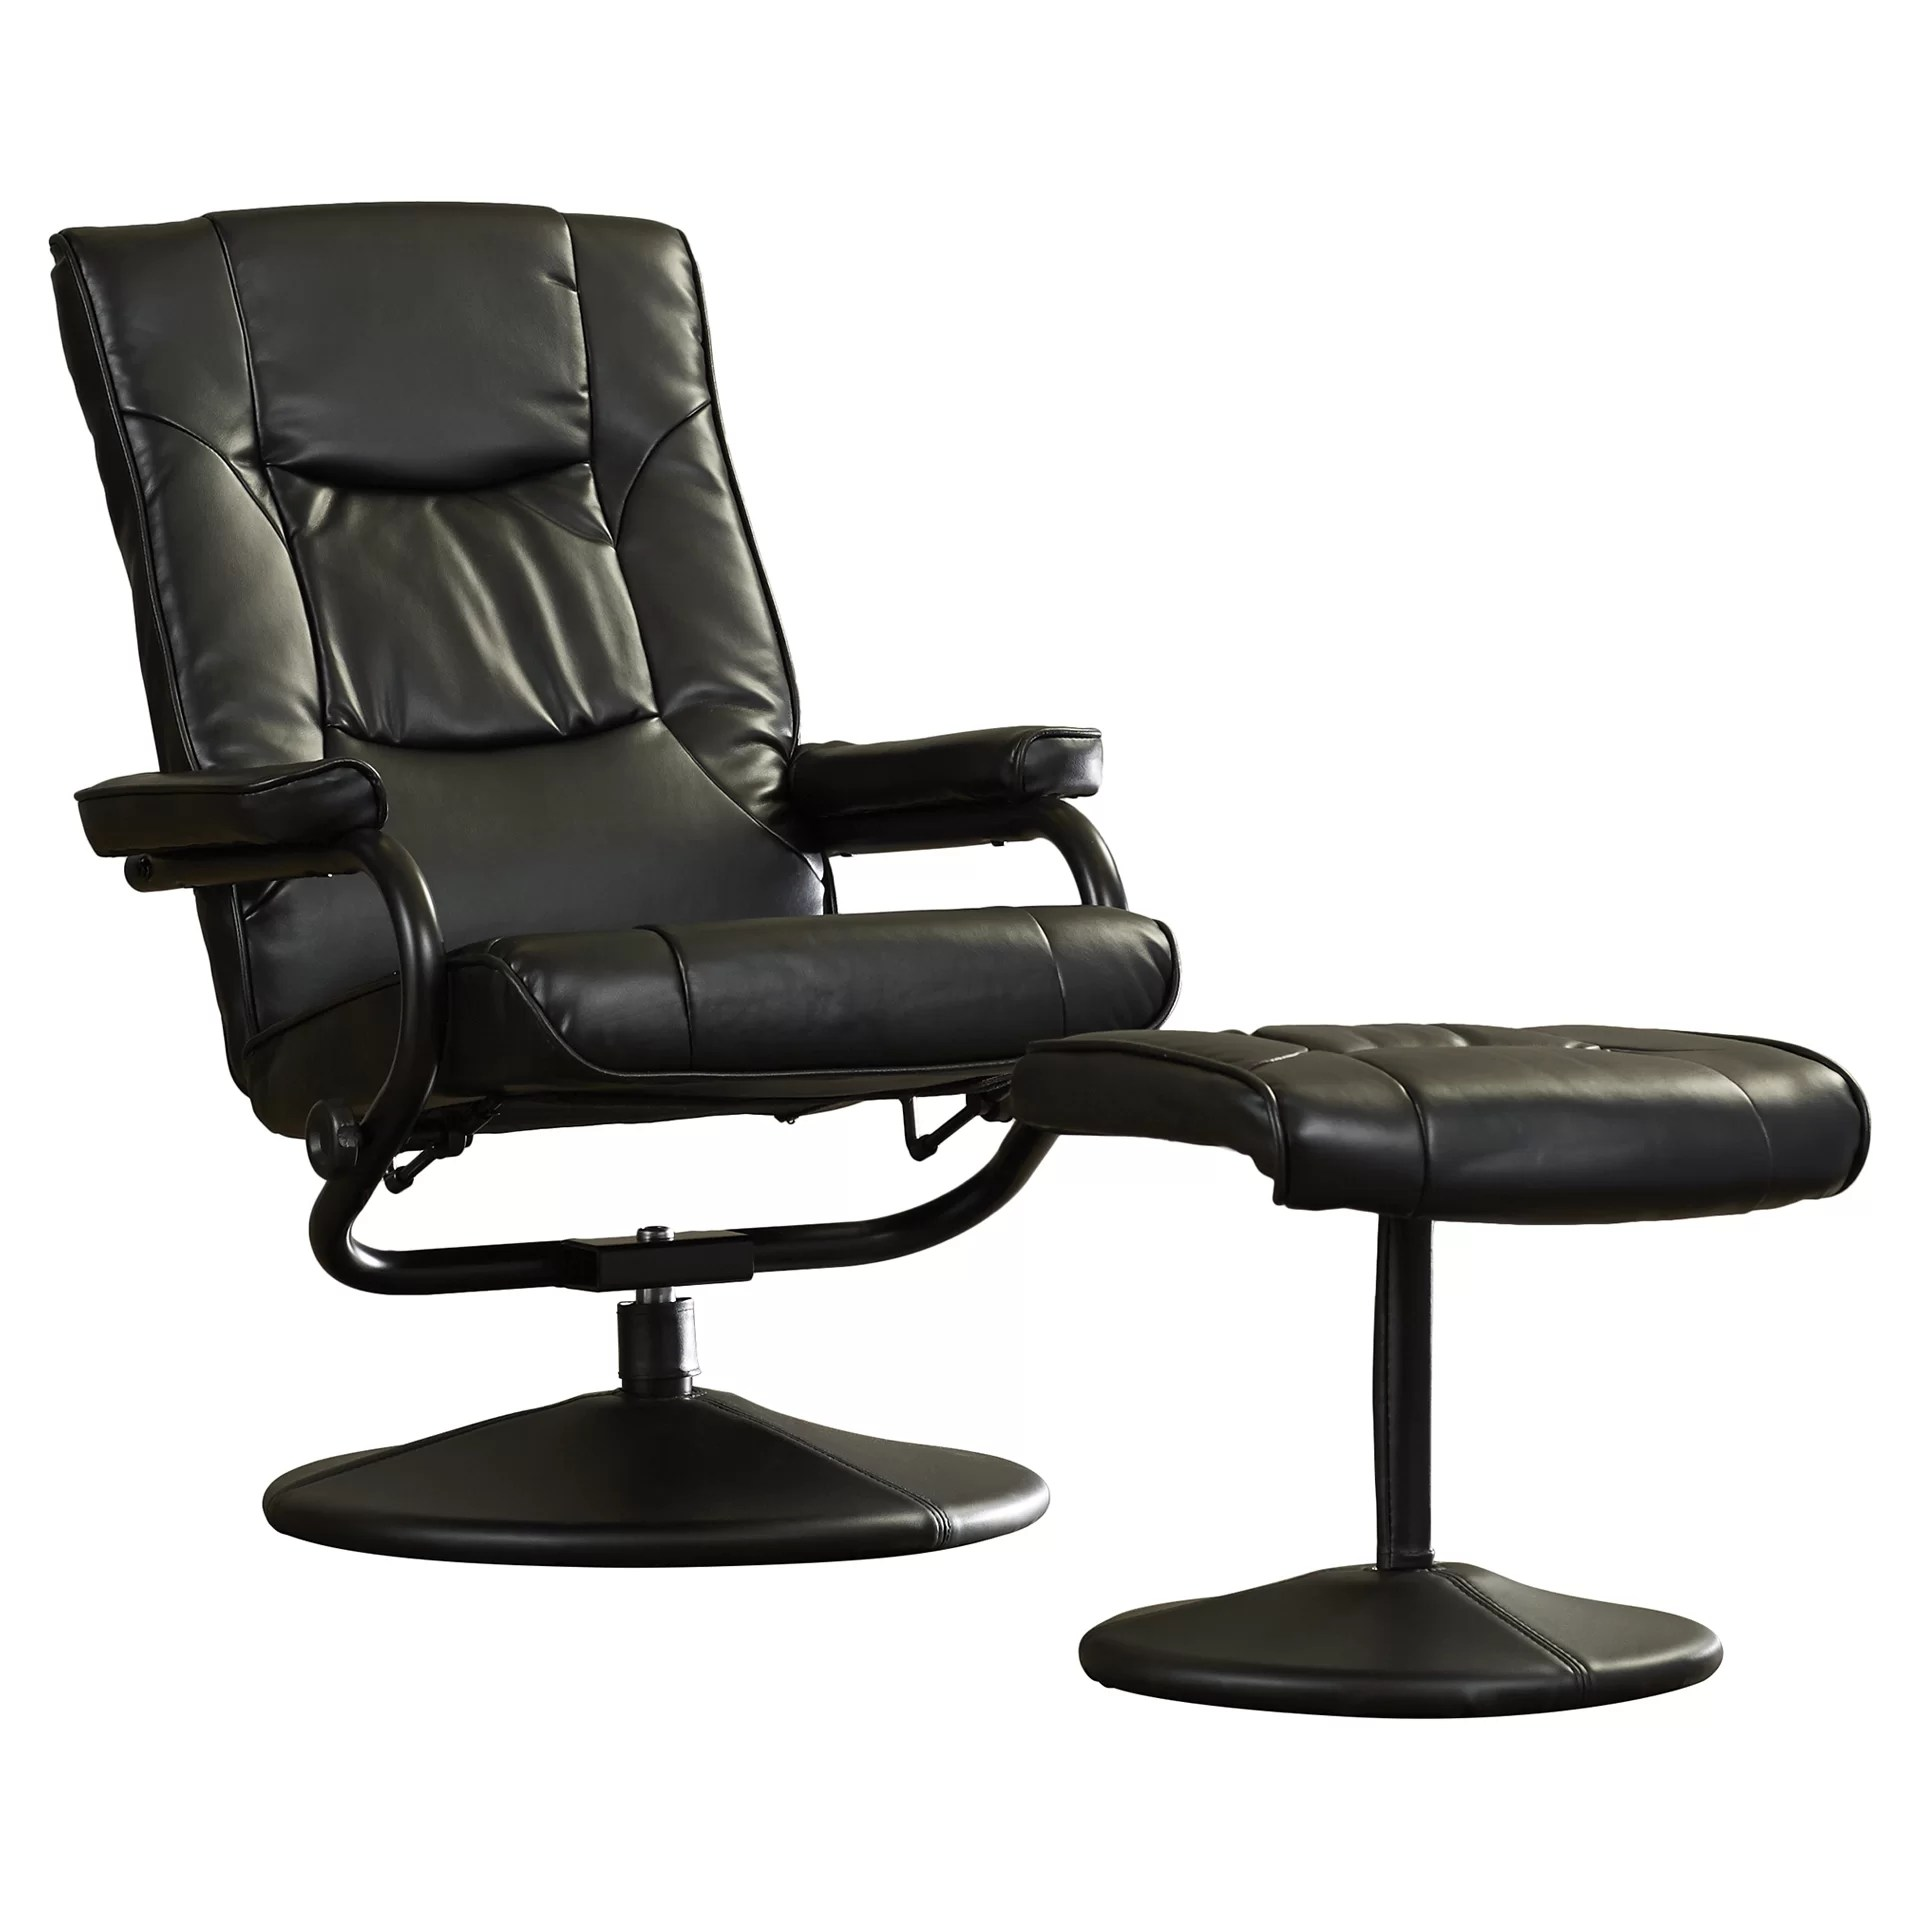 office chair ottoman bistro style tables and chairs charlton home soft leather reclining